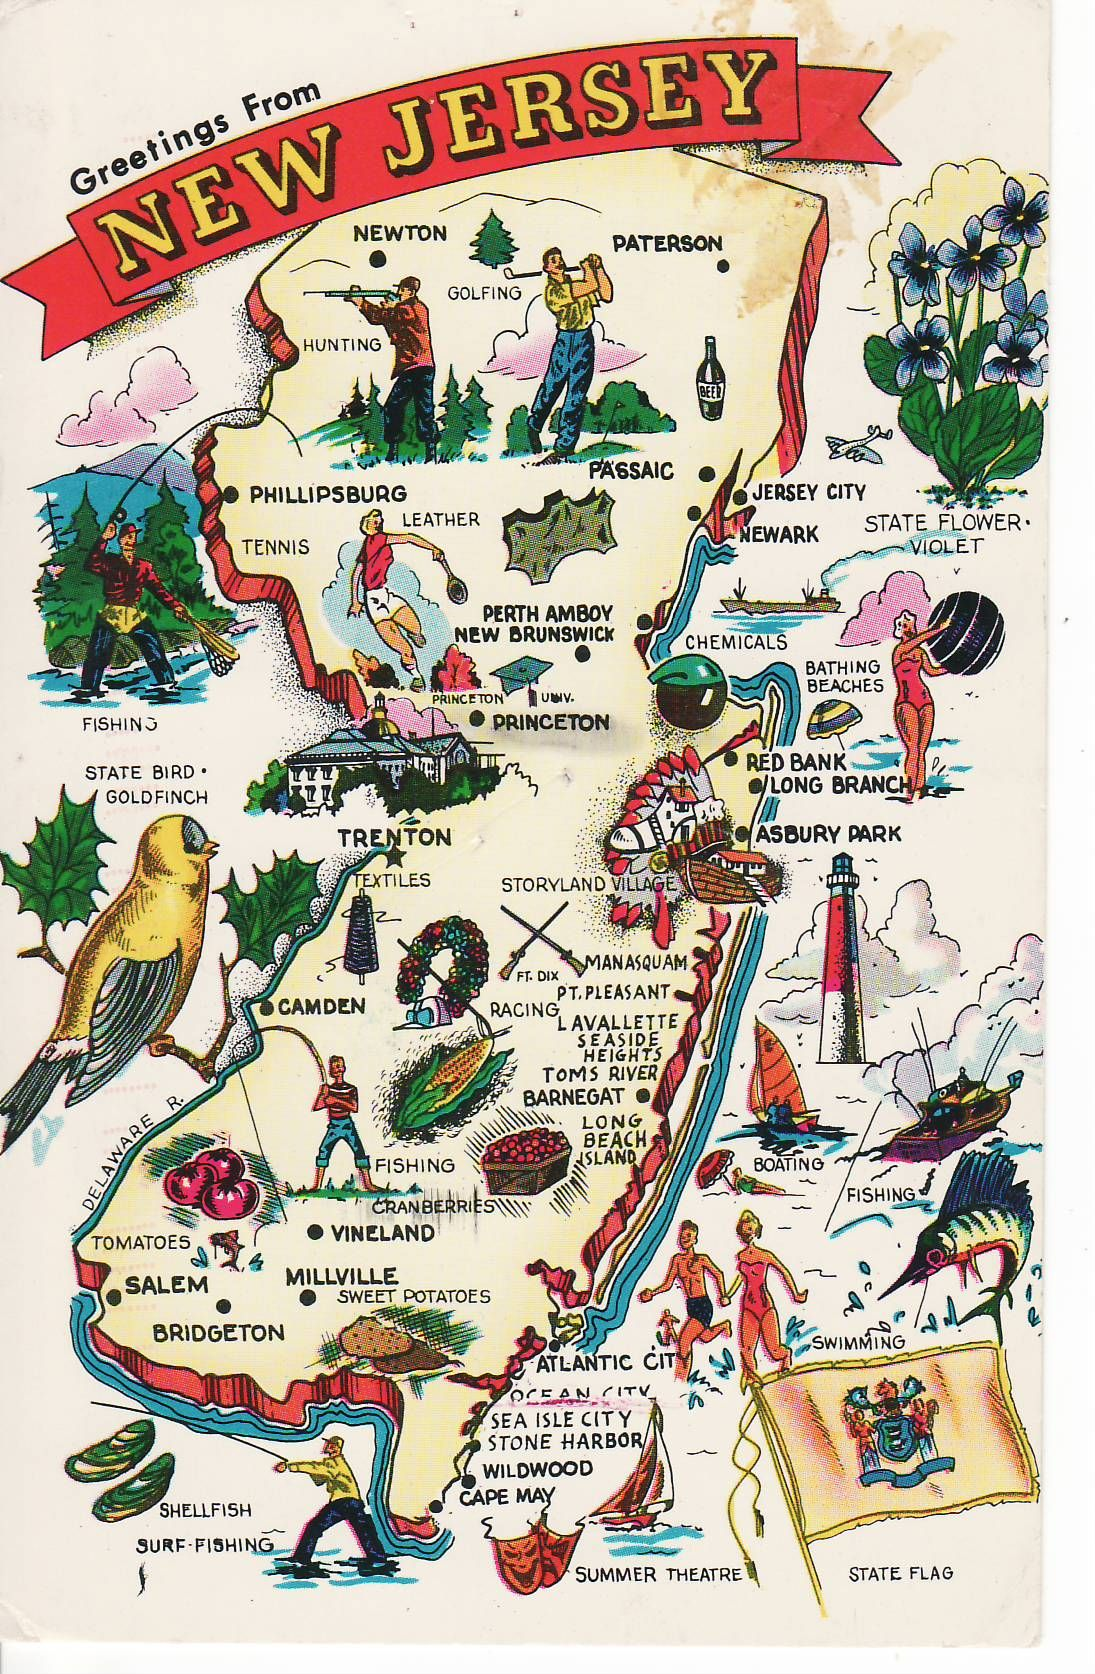 New Jersey First Settled In 1660 Ratifies The Constitution And